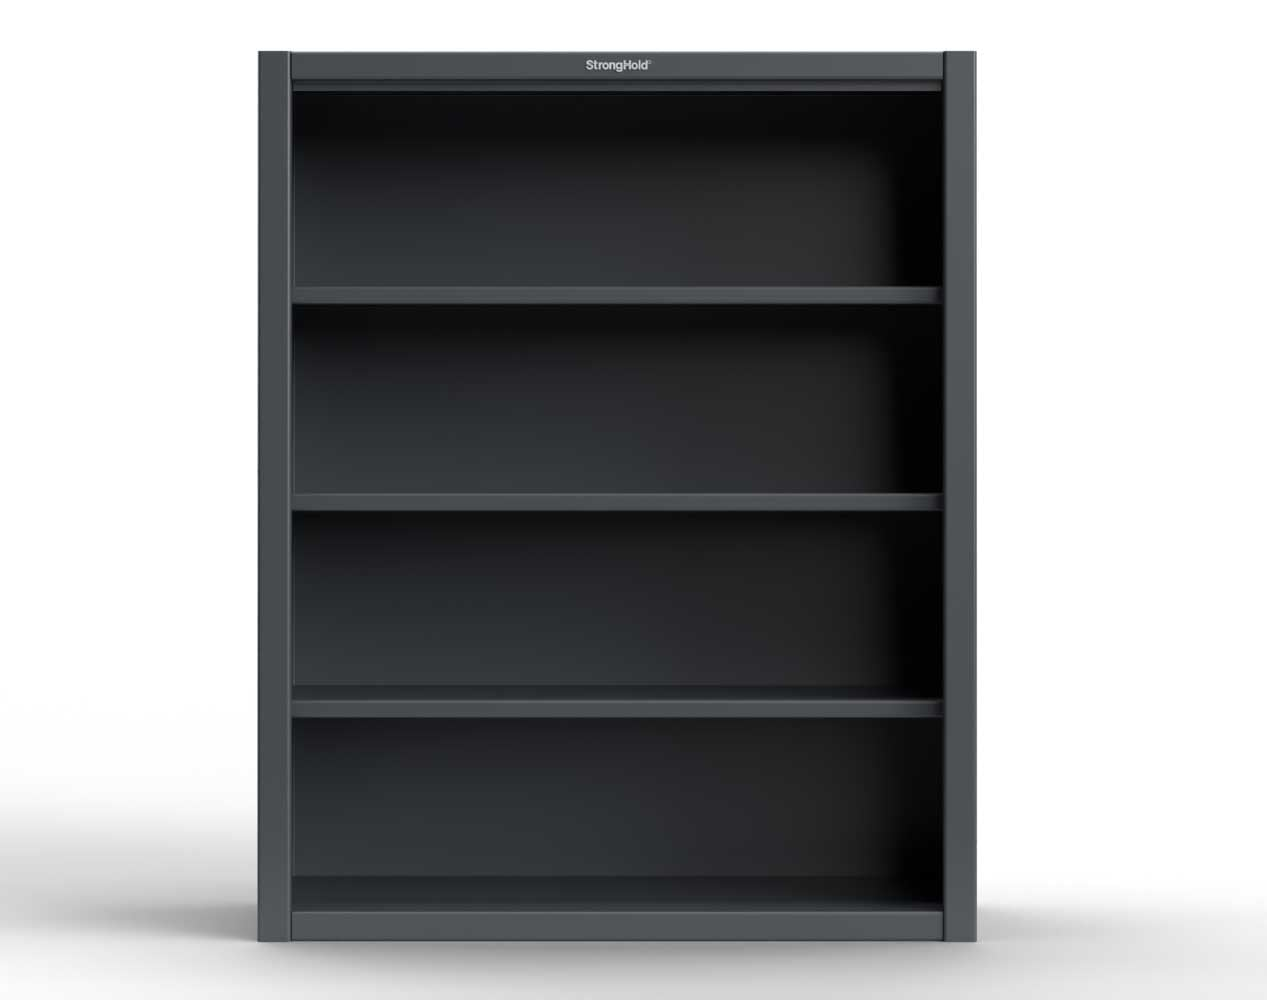 Extra Heavy Duty 12 GA Closed Shelving Unit with 3 Shelves – 36 In. W x 24 In. D x 60 In. H